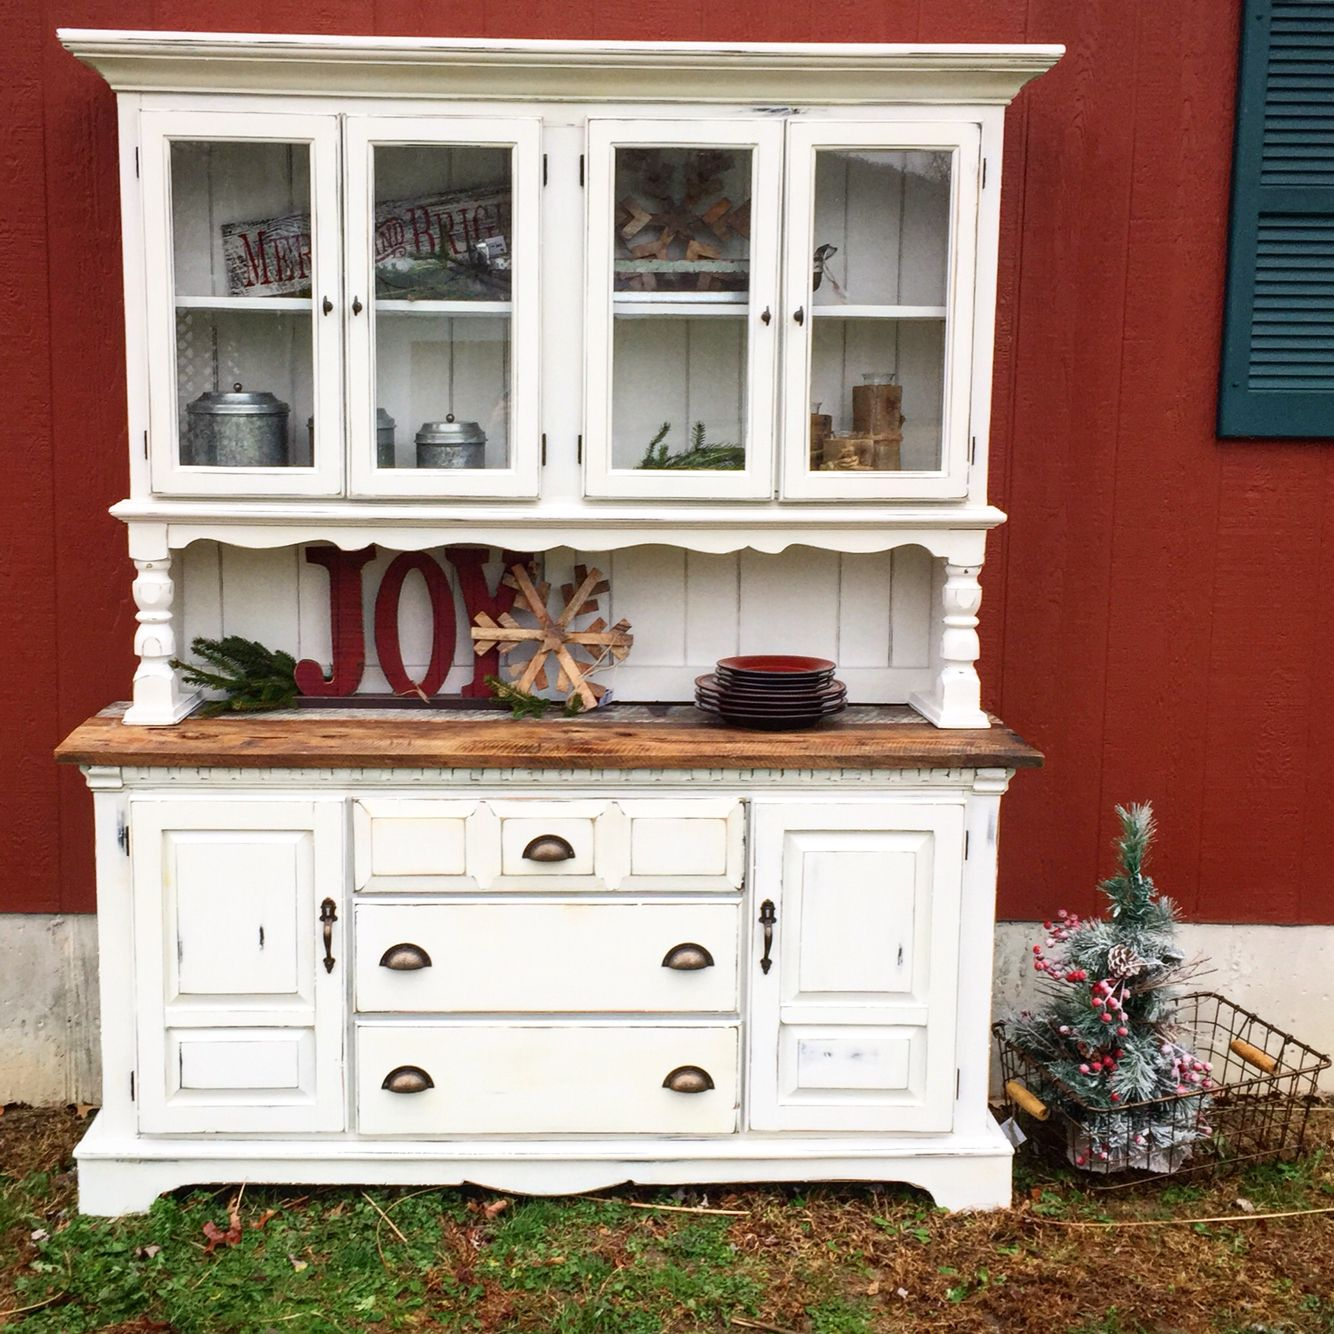 Rustic Kitchen Hutch: Rustic White Farm Style China Cabinet With BARNWOOD, Yes